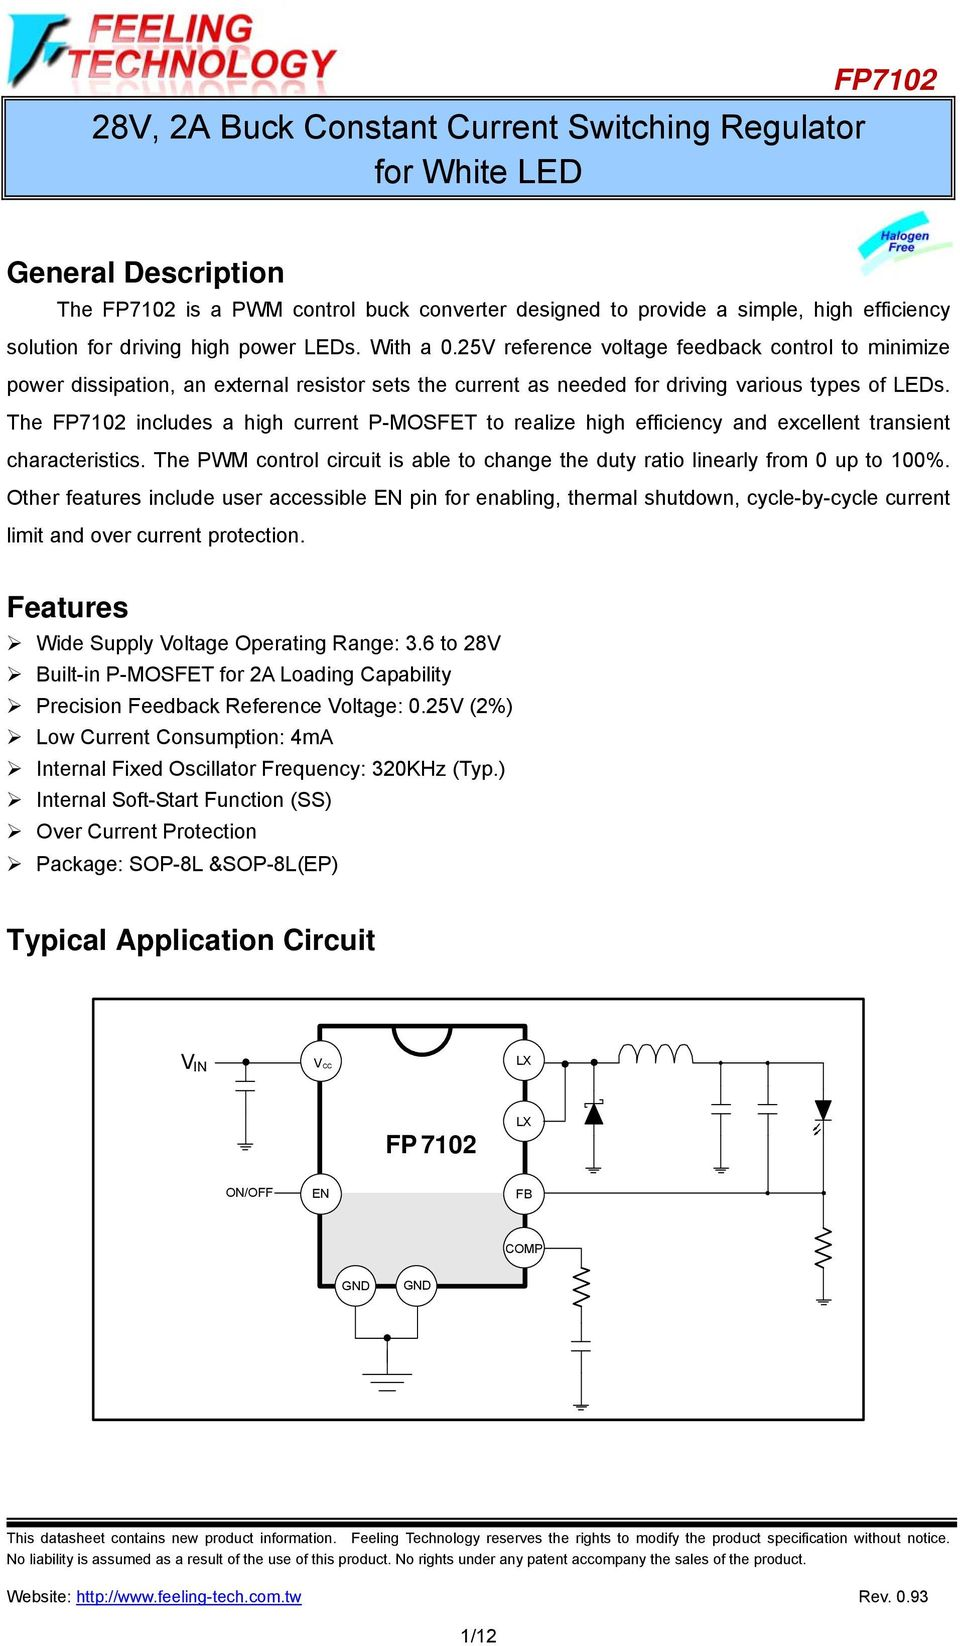 28v 2a Buck Constant Current Switching Regulator For White Led Pdf Currentlimit Circuit The Fp7102 Includes A High P Mosfet To Realize Efficiency And Excellent Transient